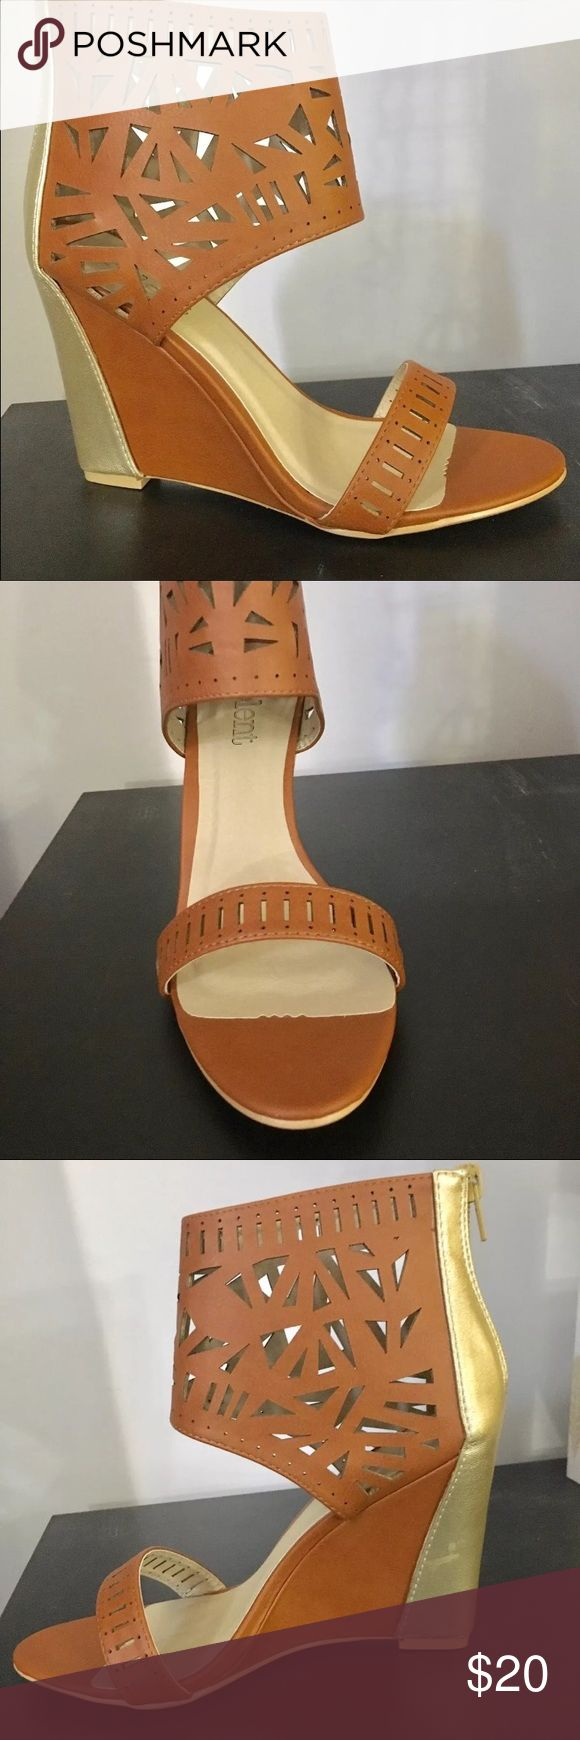 """Women's wedges size 8.5 Women's wedges in a size 8.5. These have never been worn. They are brand new in the box in perfect condition. The heel is about 4"""". relent  Shoes Wedges"""